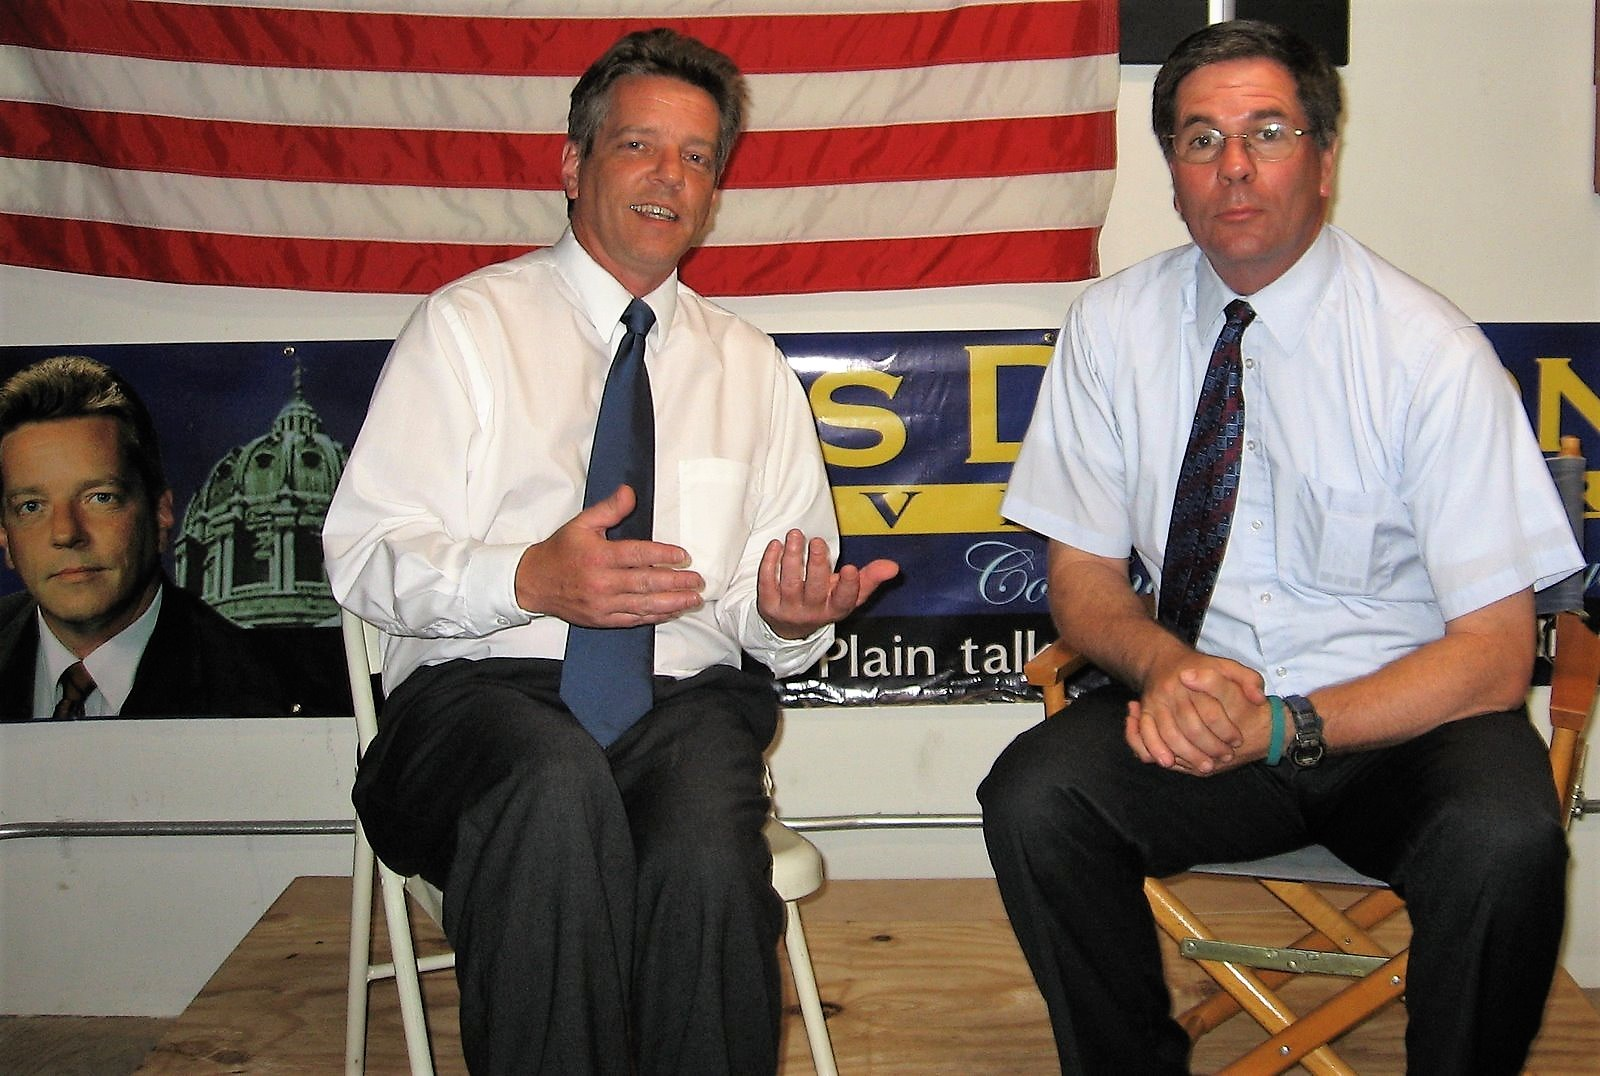 Russ Diamond and Mark Rauterkus at an event in Pittsburgh's South Side